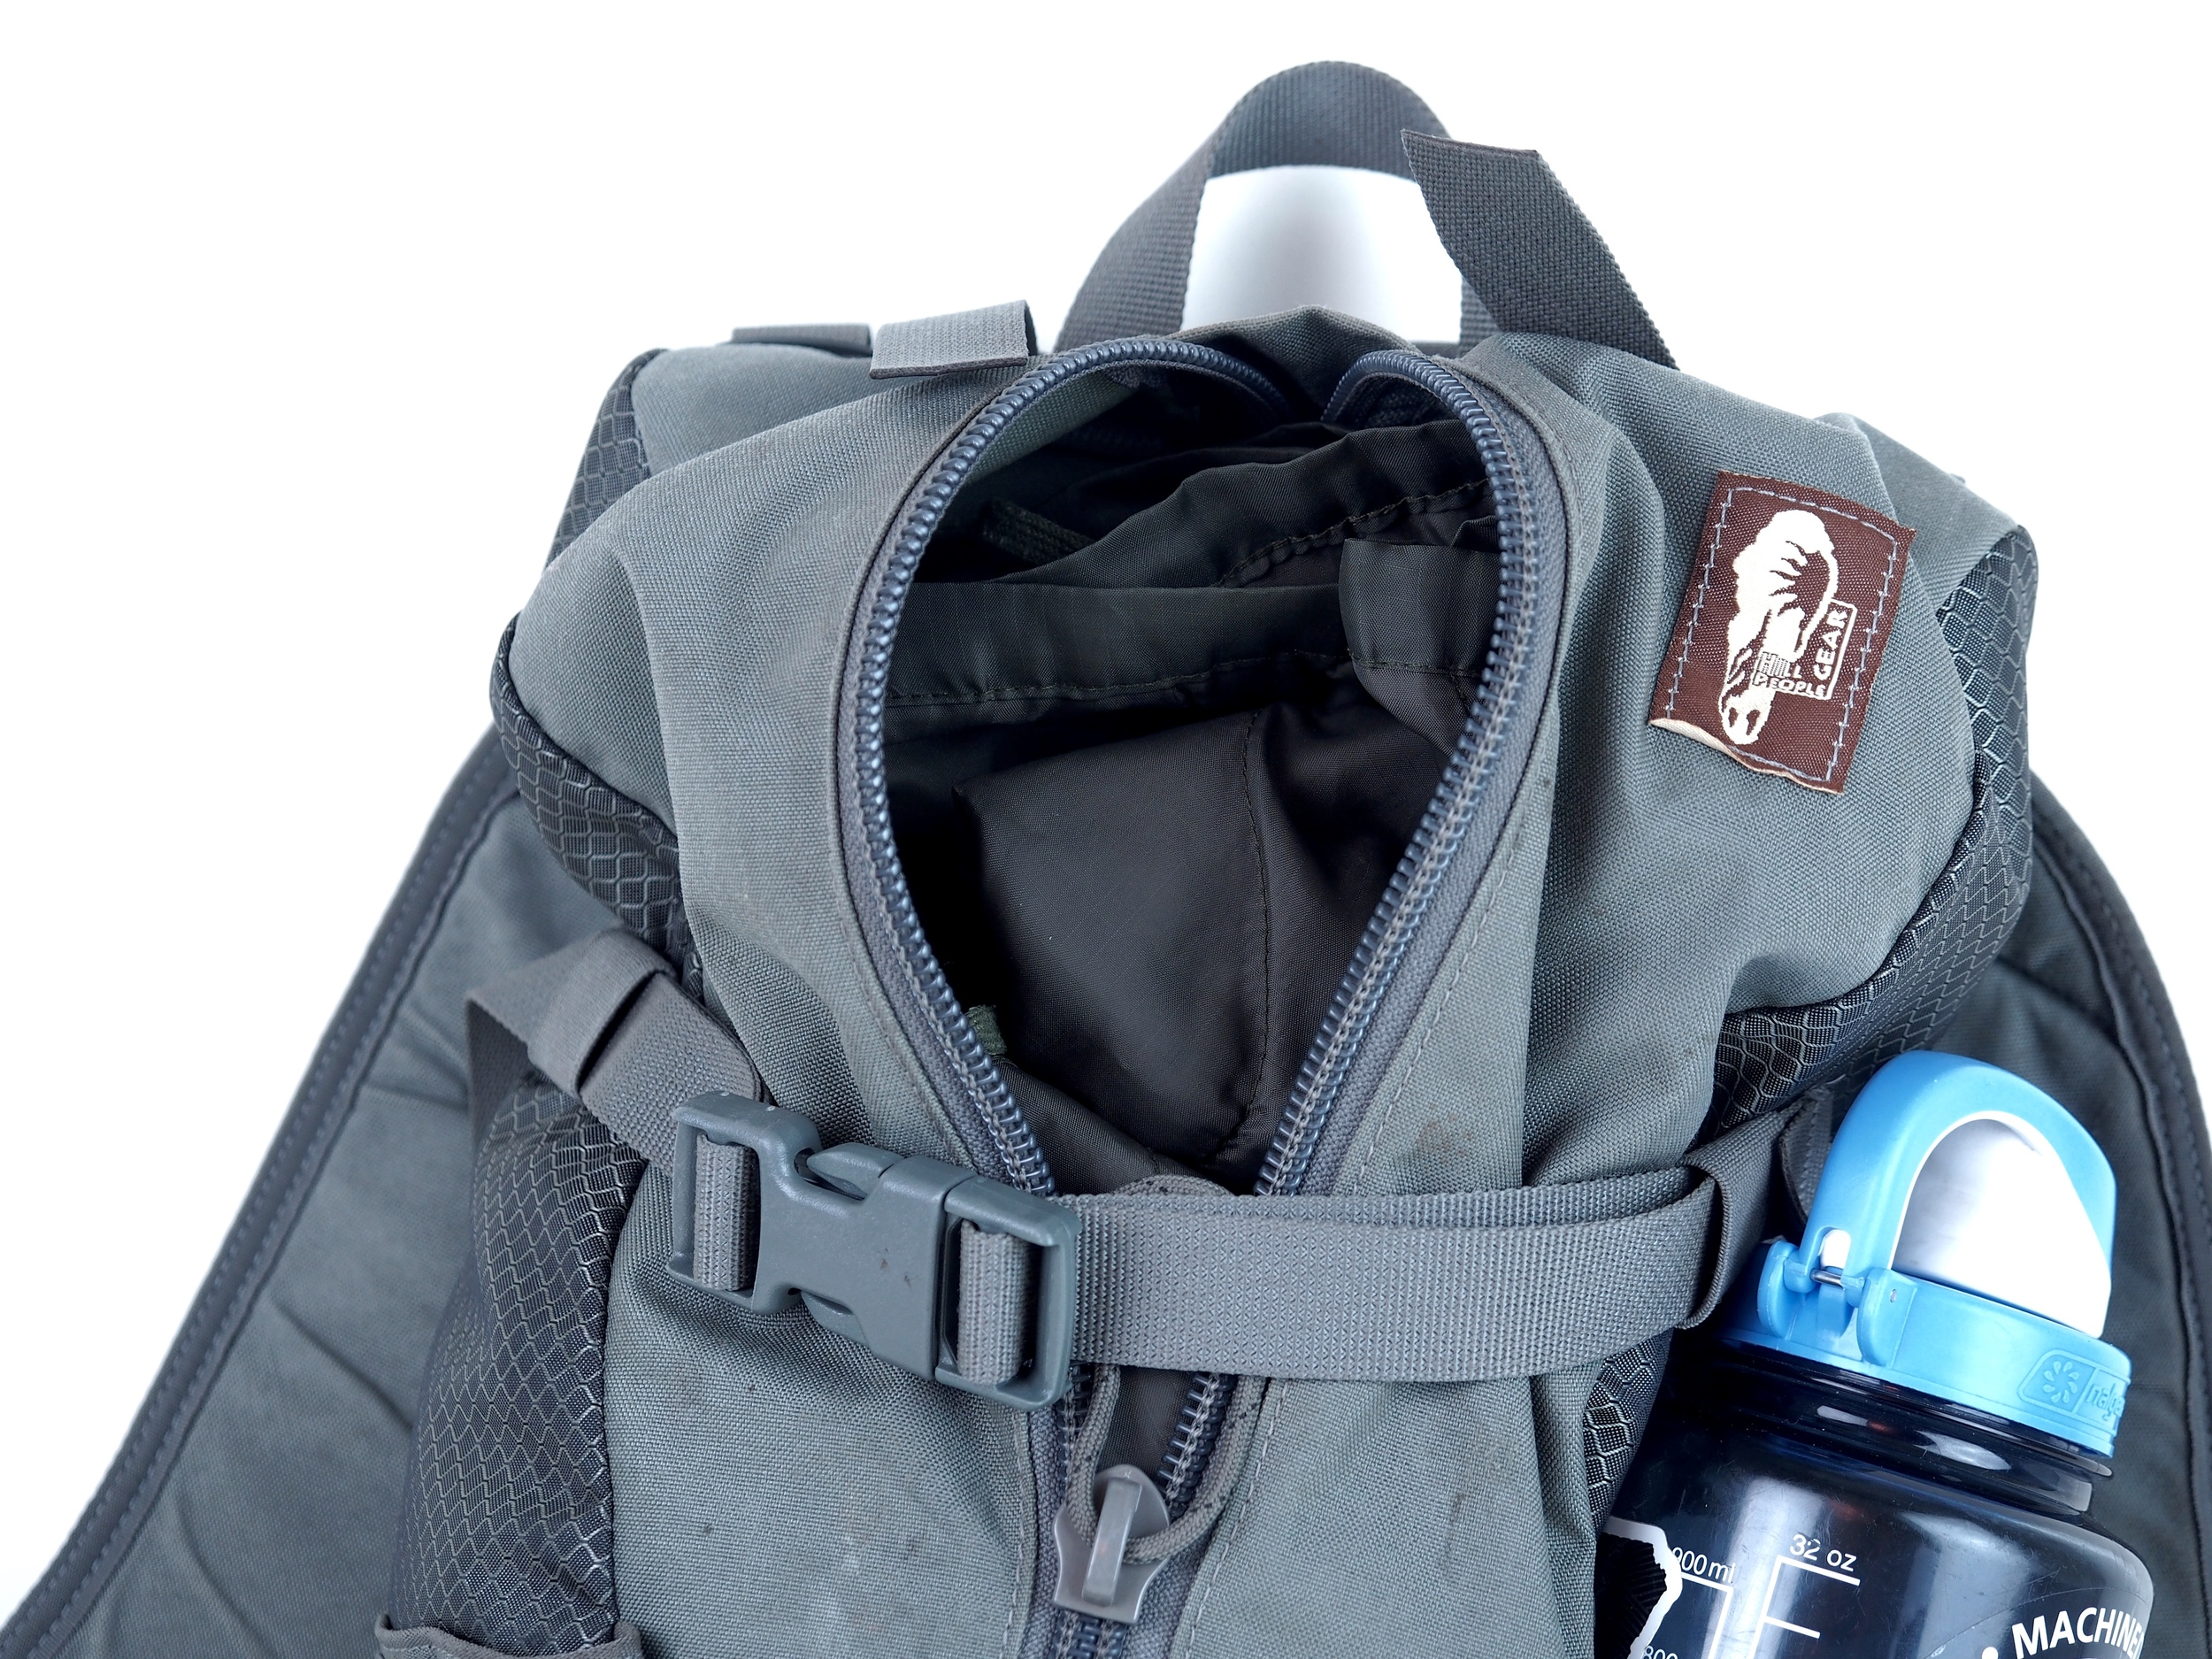 Yes, my bag is dirty...I happen to use it. I use it because it's functional, simple, and provides a great way to carry all my items for a day hike or day hunt. Yours will have stains as well!